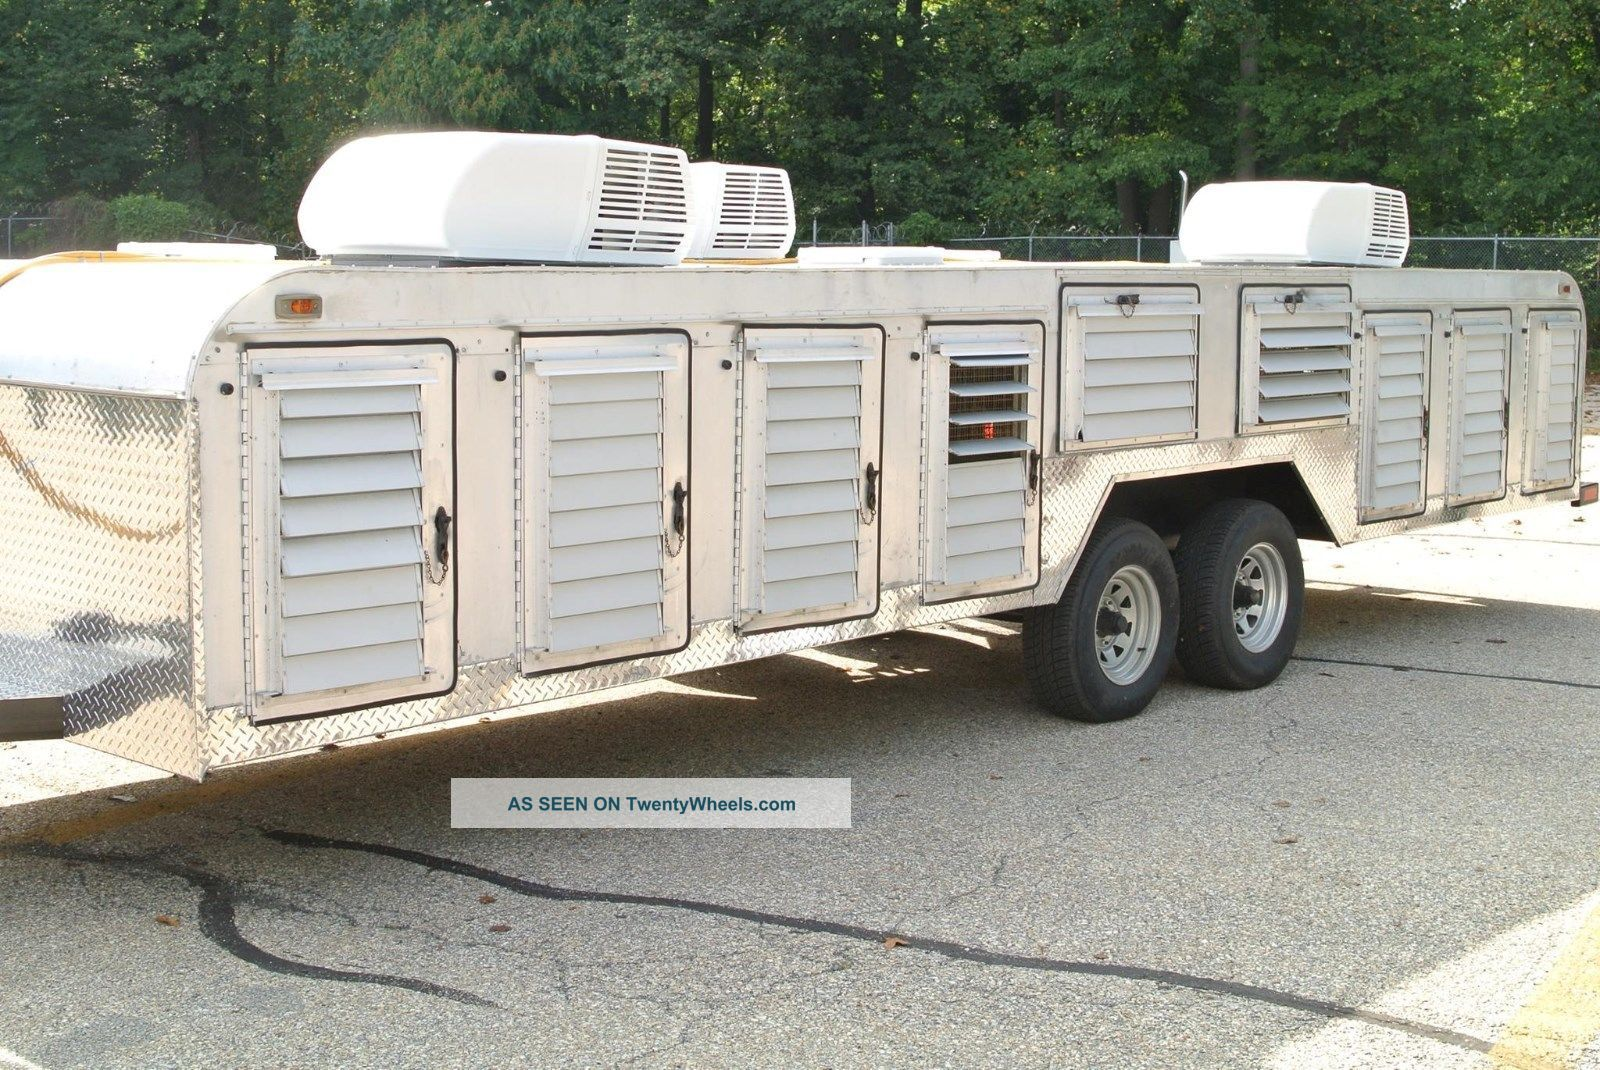 Canine / Dog Transport Hauler 14 Compartment Trailer Tuffy Line Trailers photo